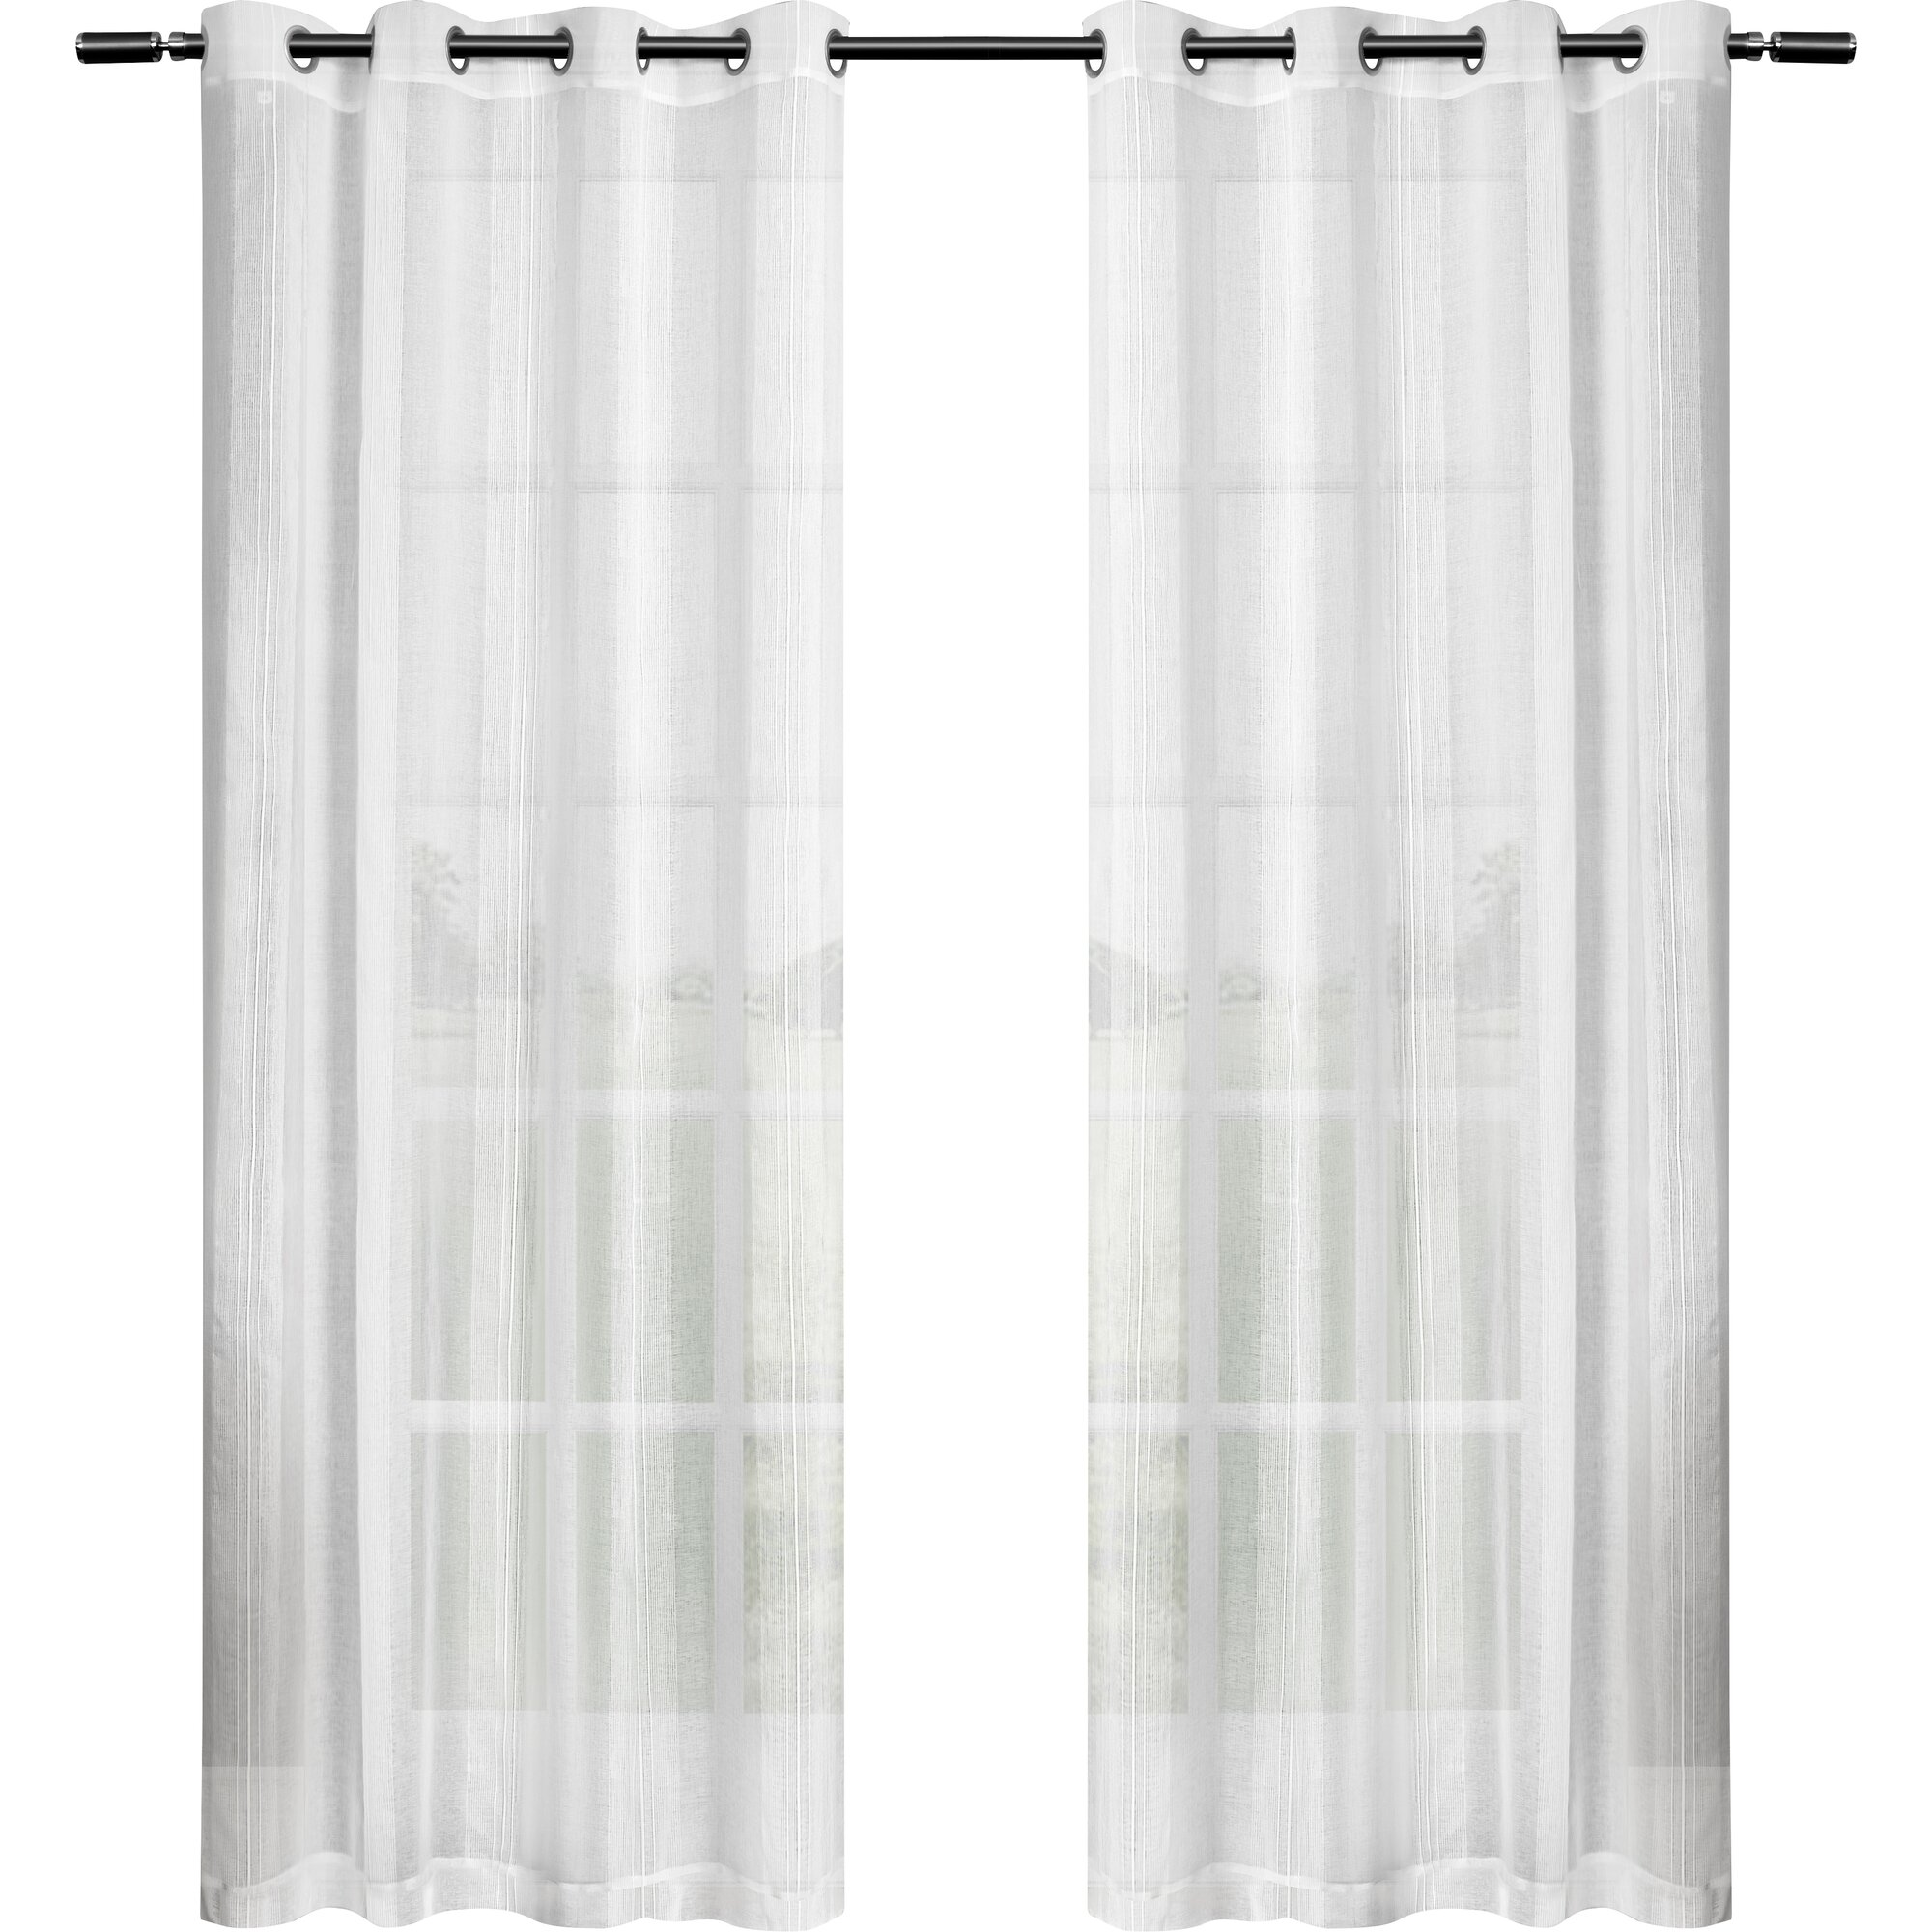 Amalgamated Textiles Exclusive Home Solid Sheer Curtain Panels Reviews